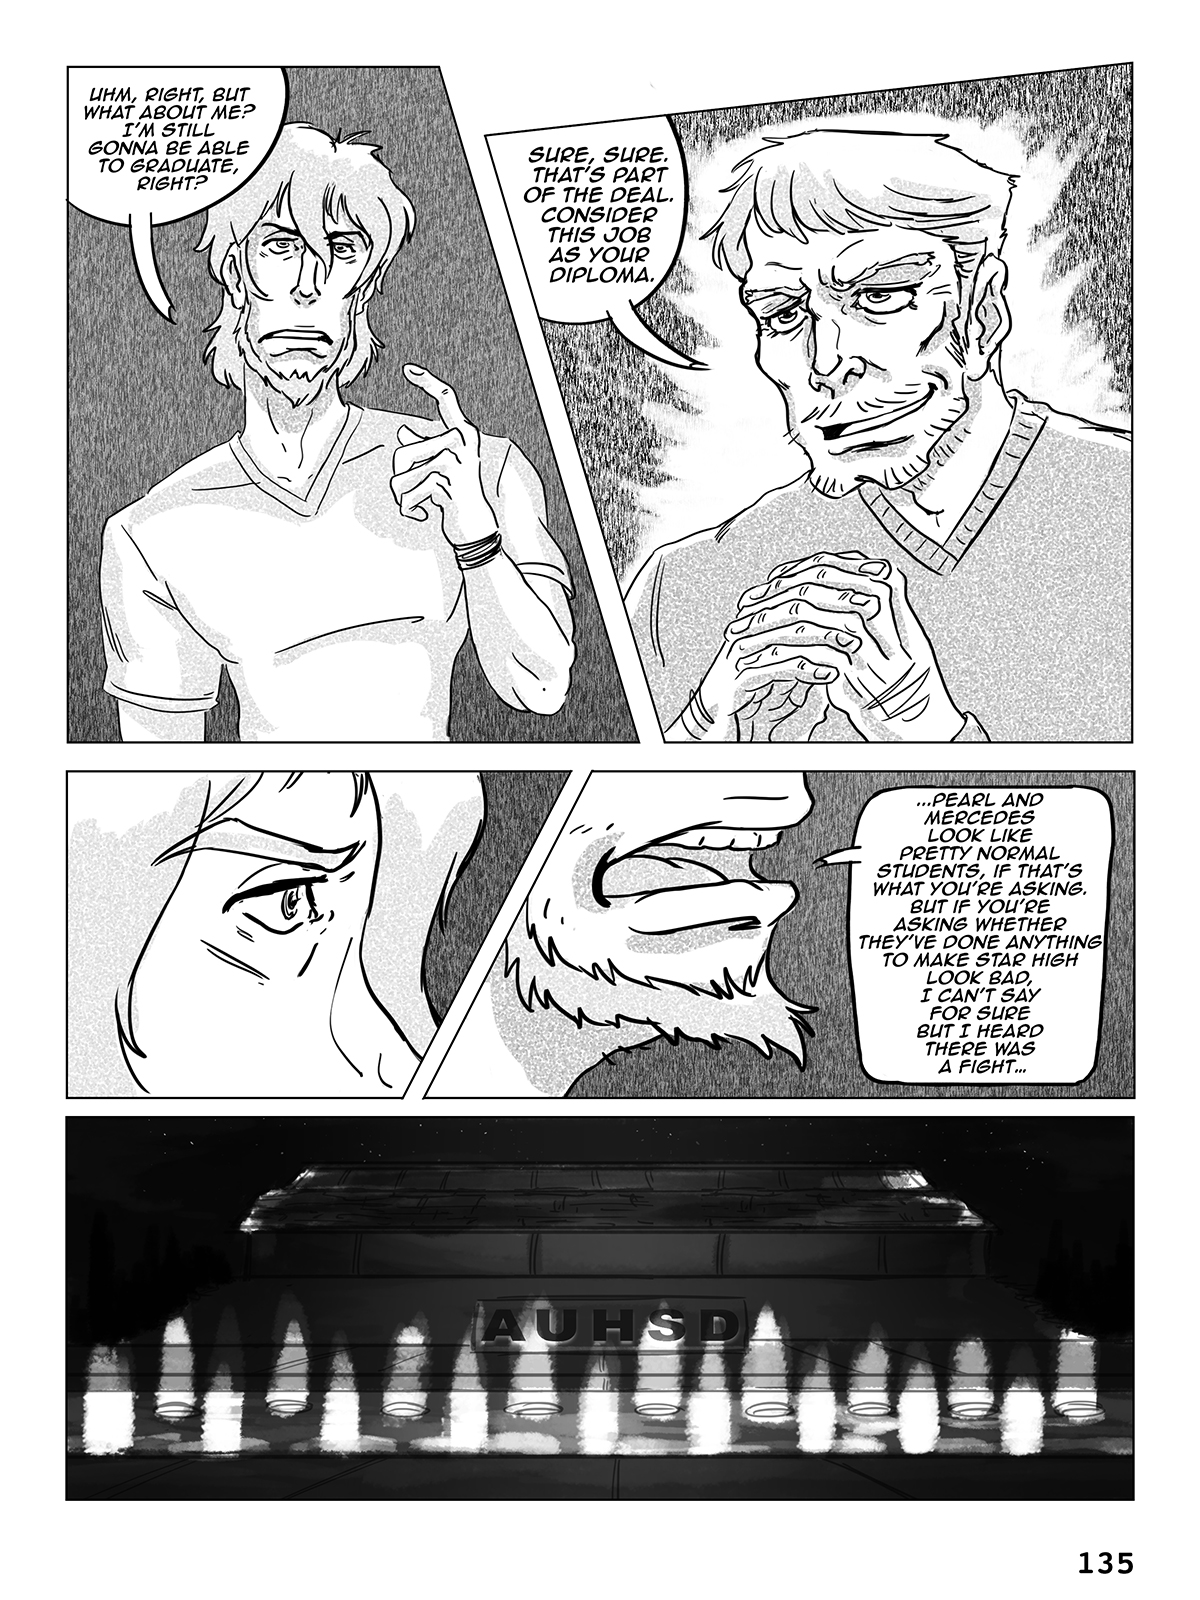 Hockey, Love, & GUTS! – Chapter 6 – Page 135